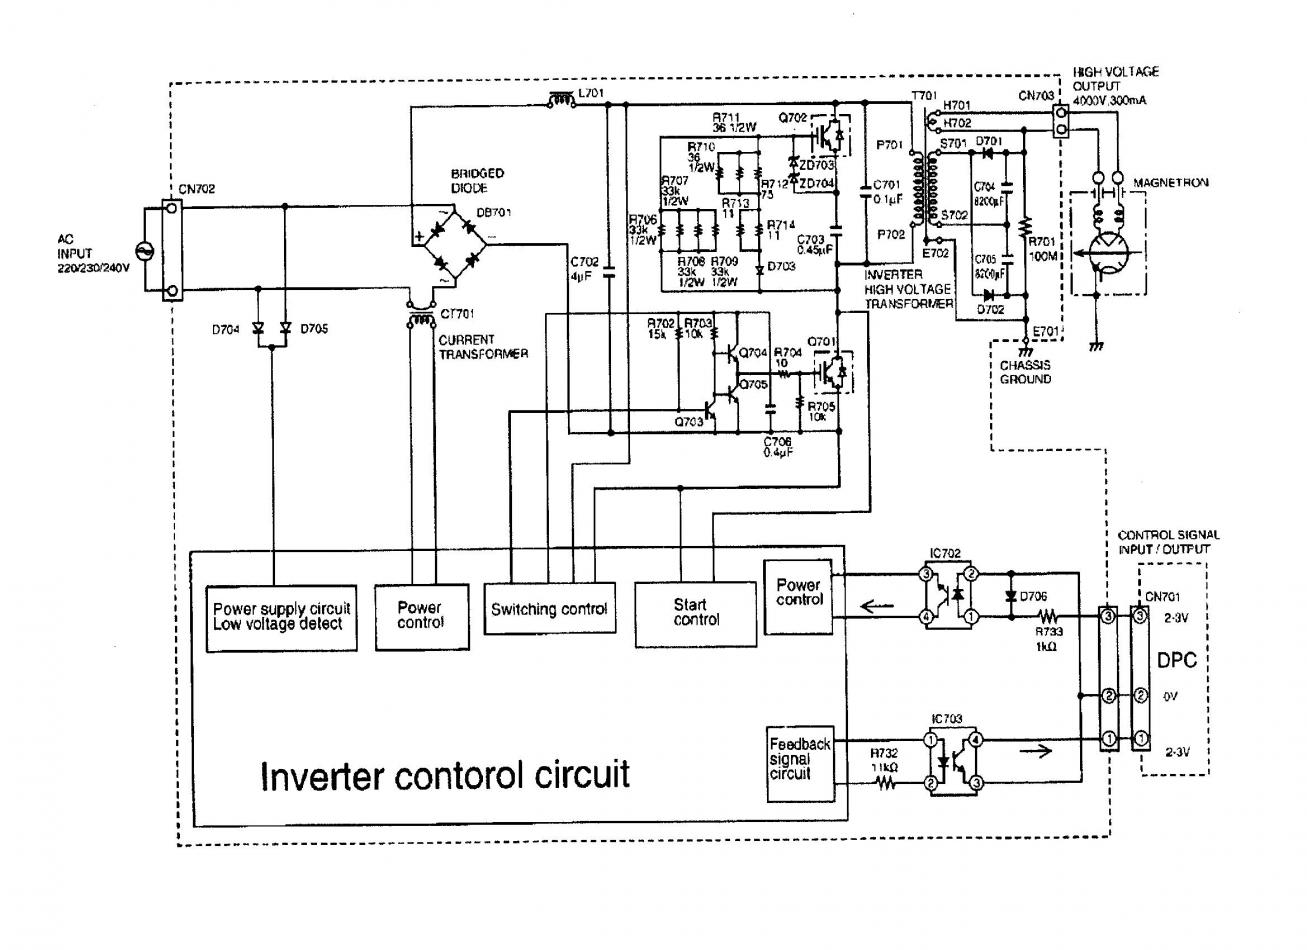 hight resolution of microwave capacitor wiring diagram 34 wiring diagram kitchenaid electric range wiring diagram kitchenaid superba supressor wiring diagram